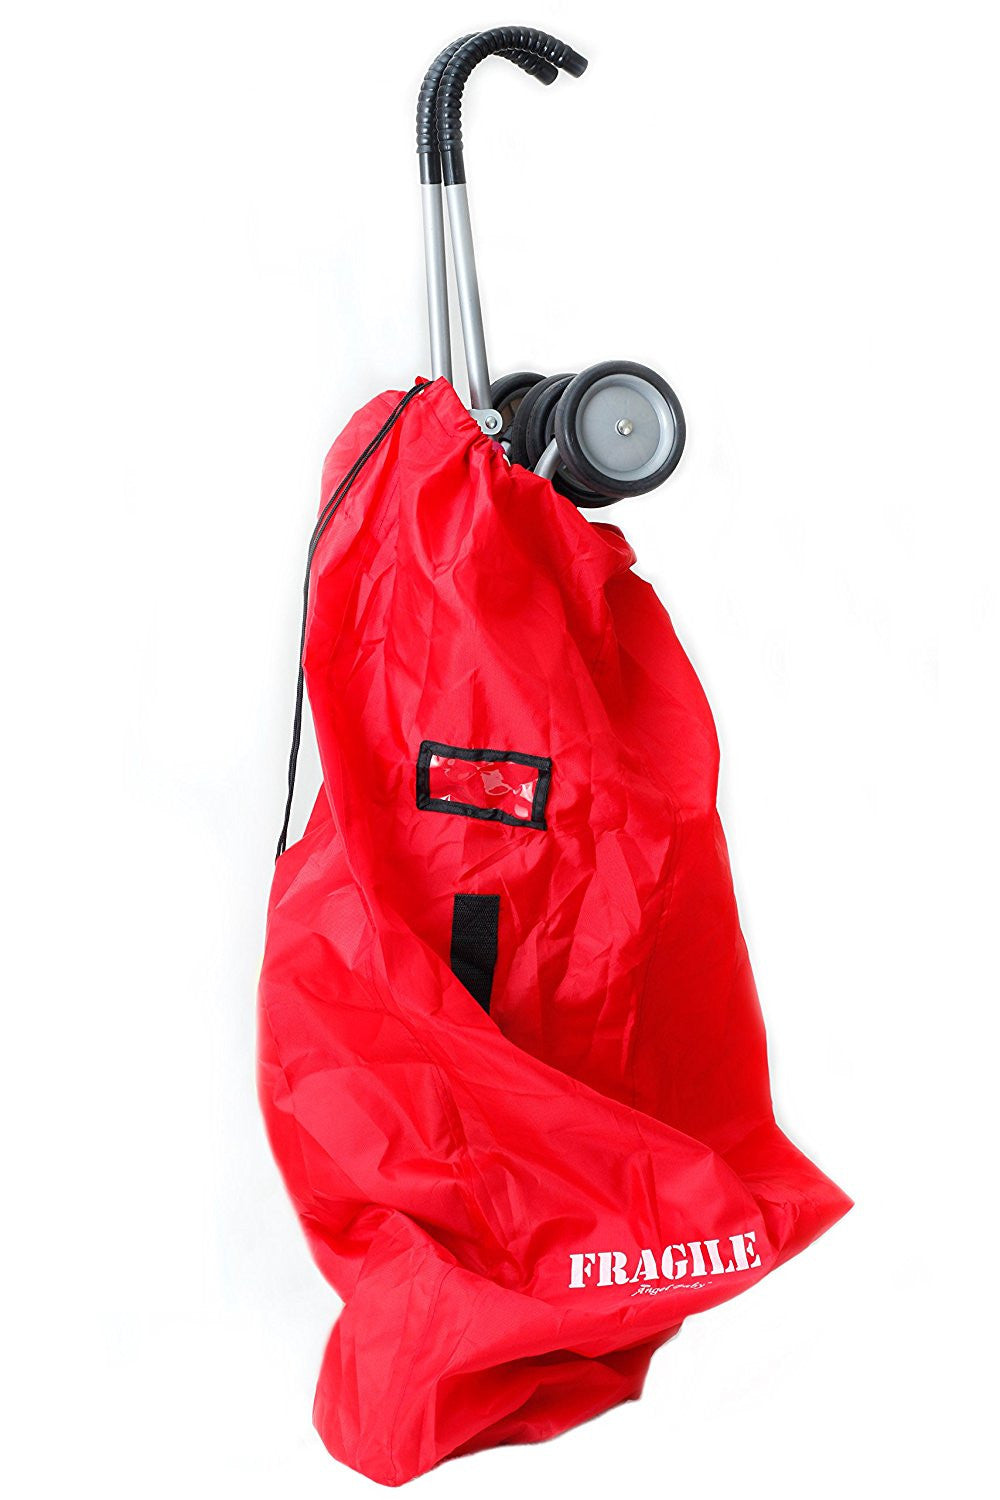 Angel Baby Red Travel Bag for Umbrella Strollers - Angel Direct Products - 7